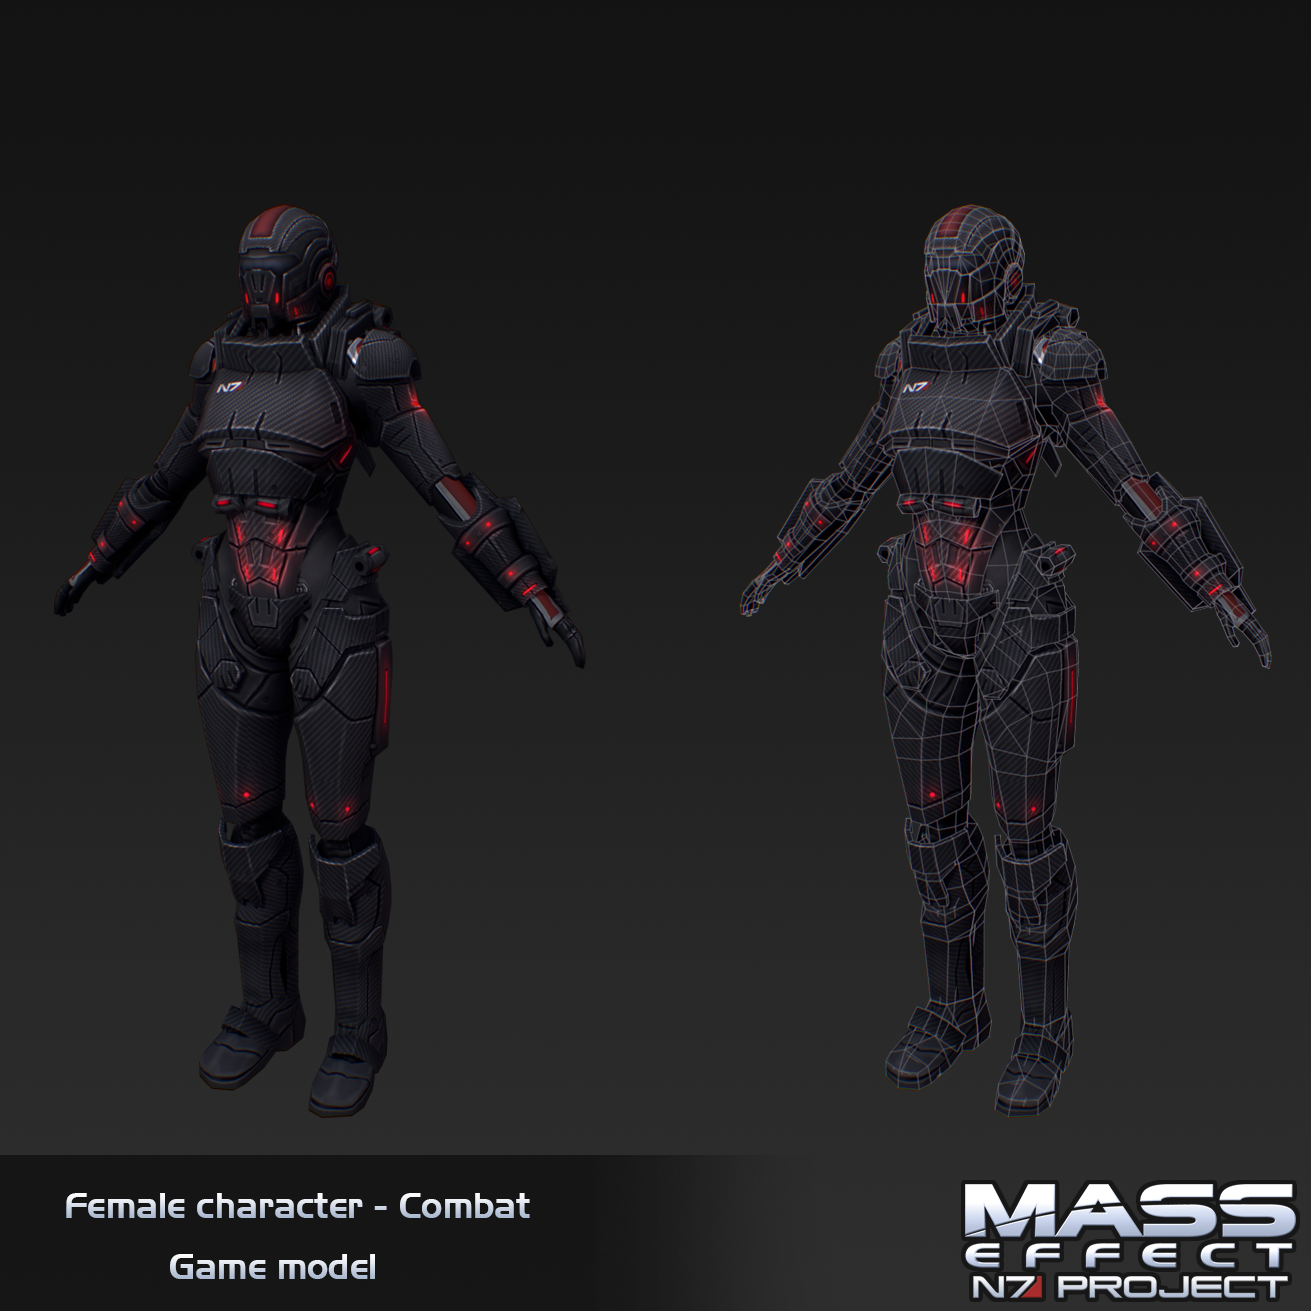 Mass Effect: N7Project - Showcase - Revora Forums